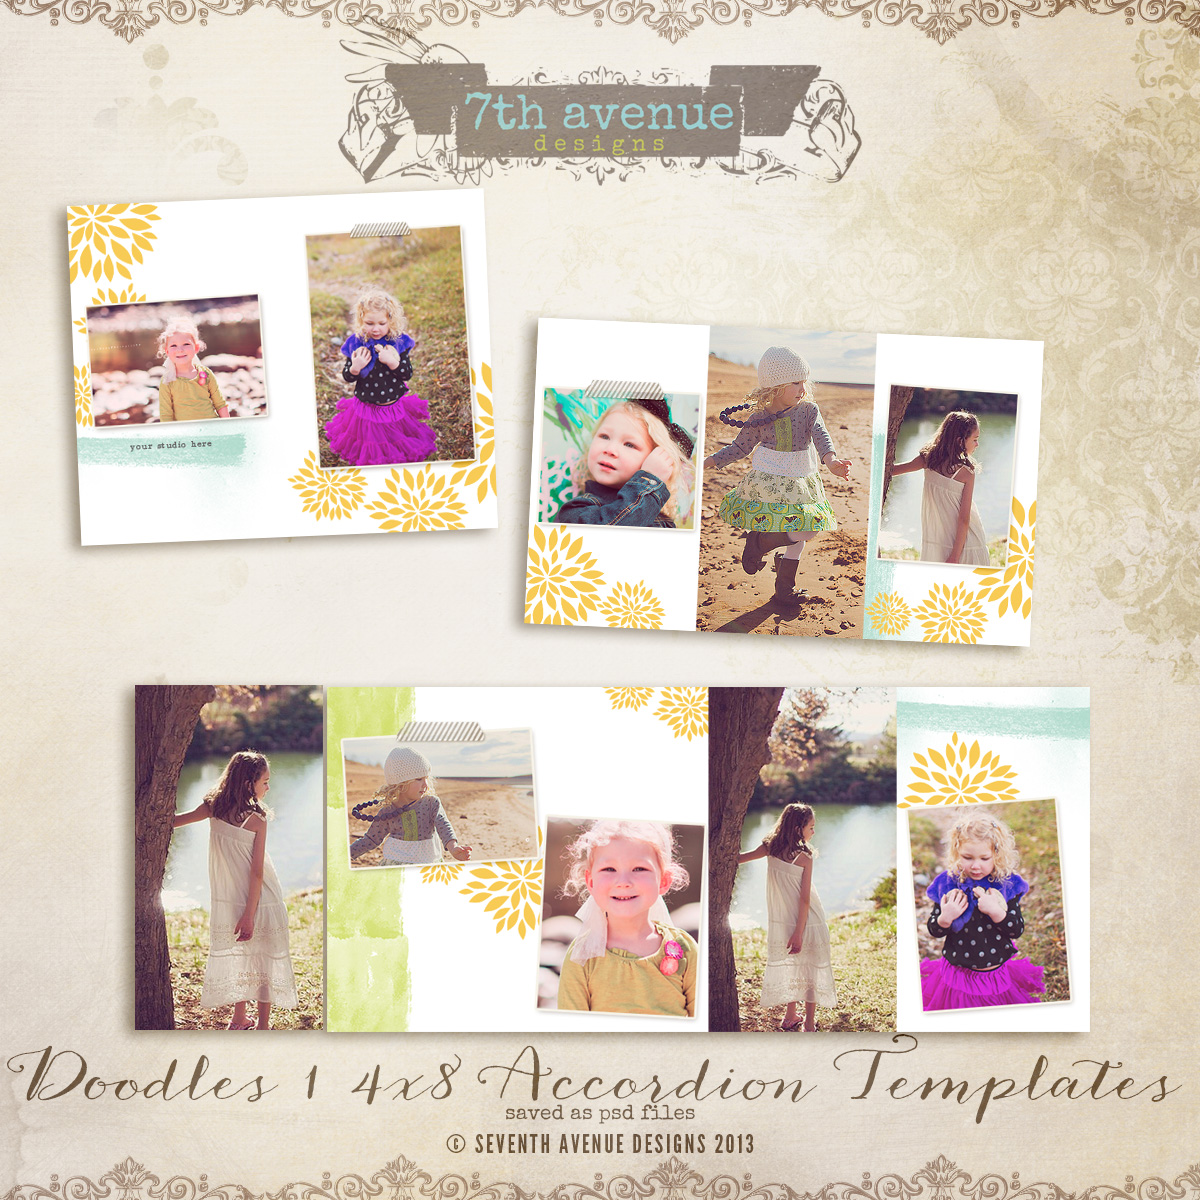 Doodles 1 4x8 Accordion book templates